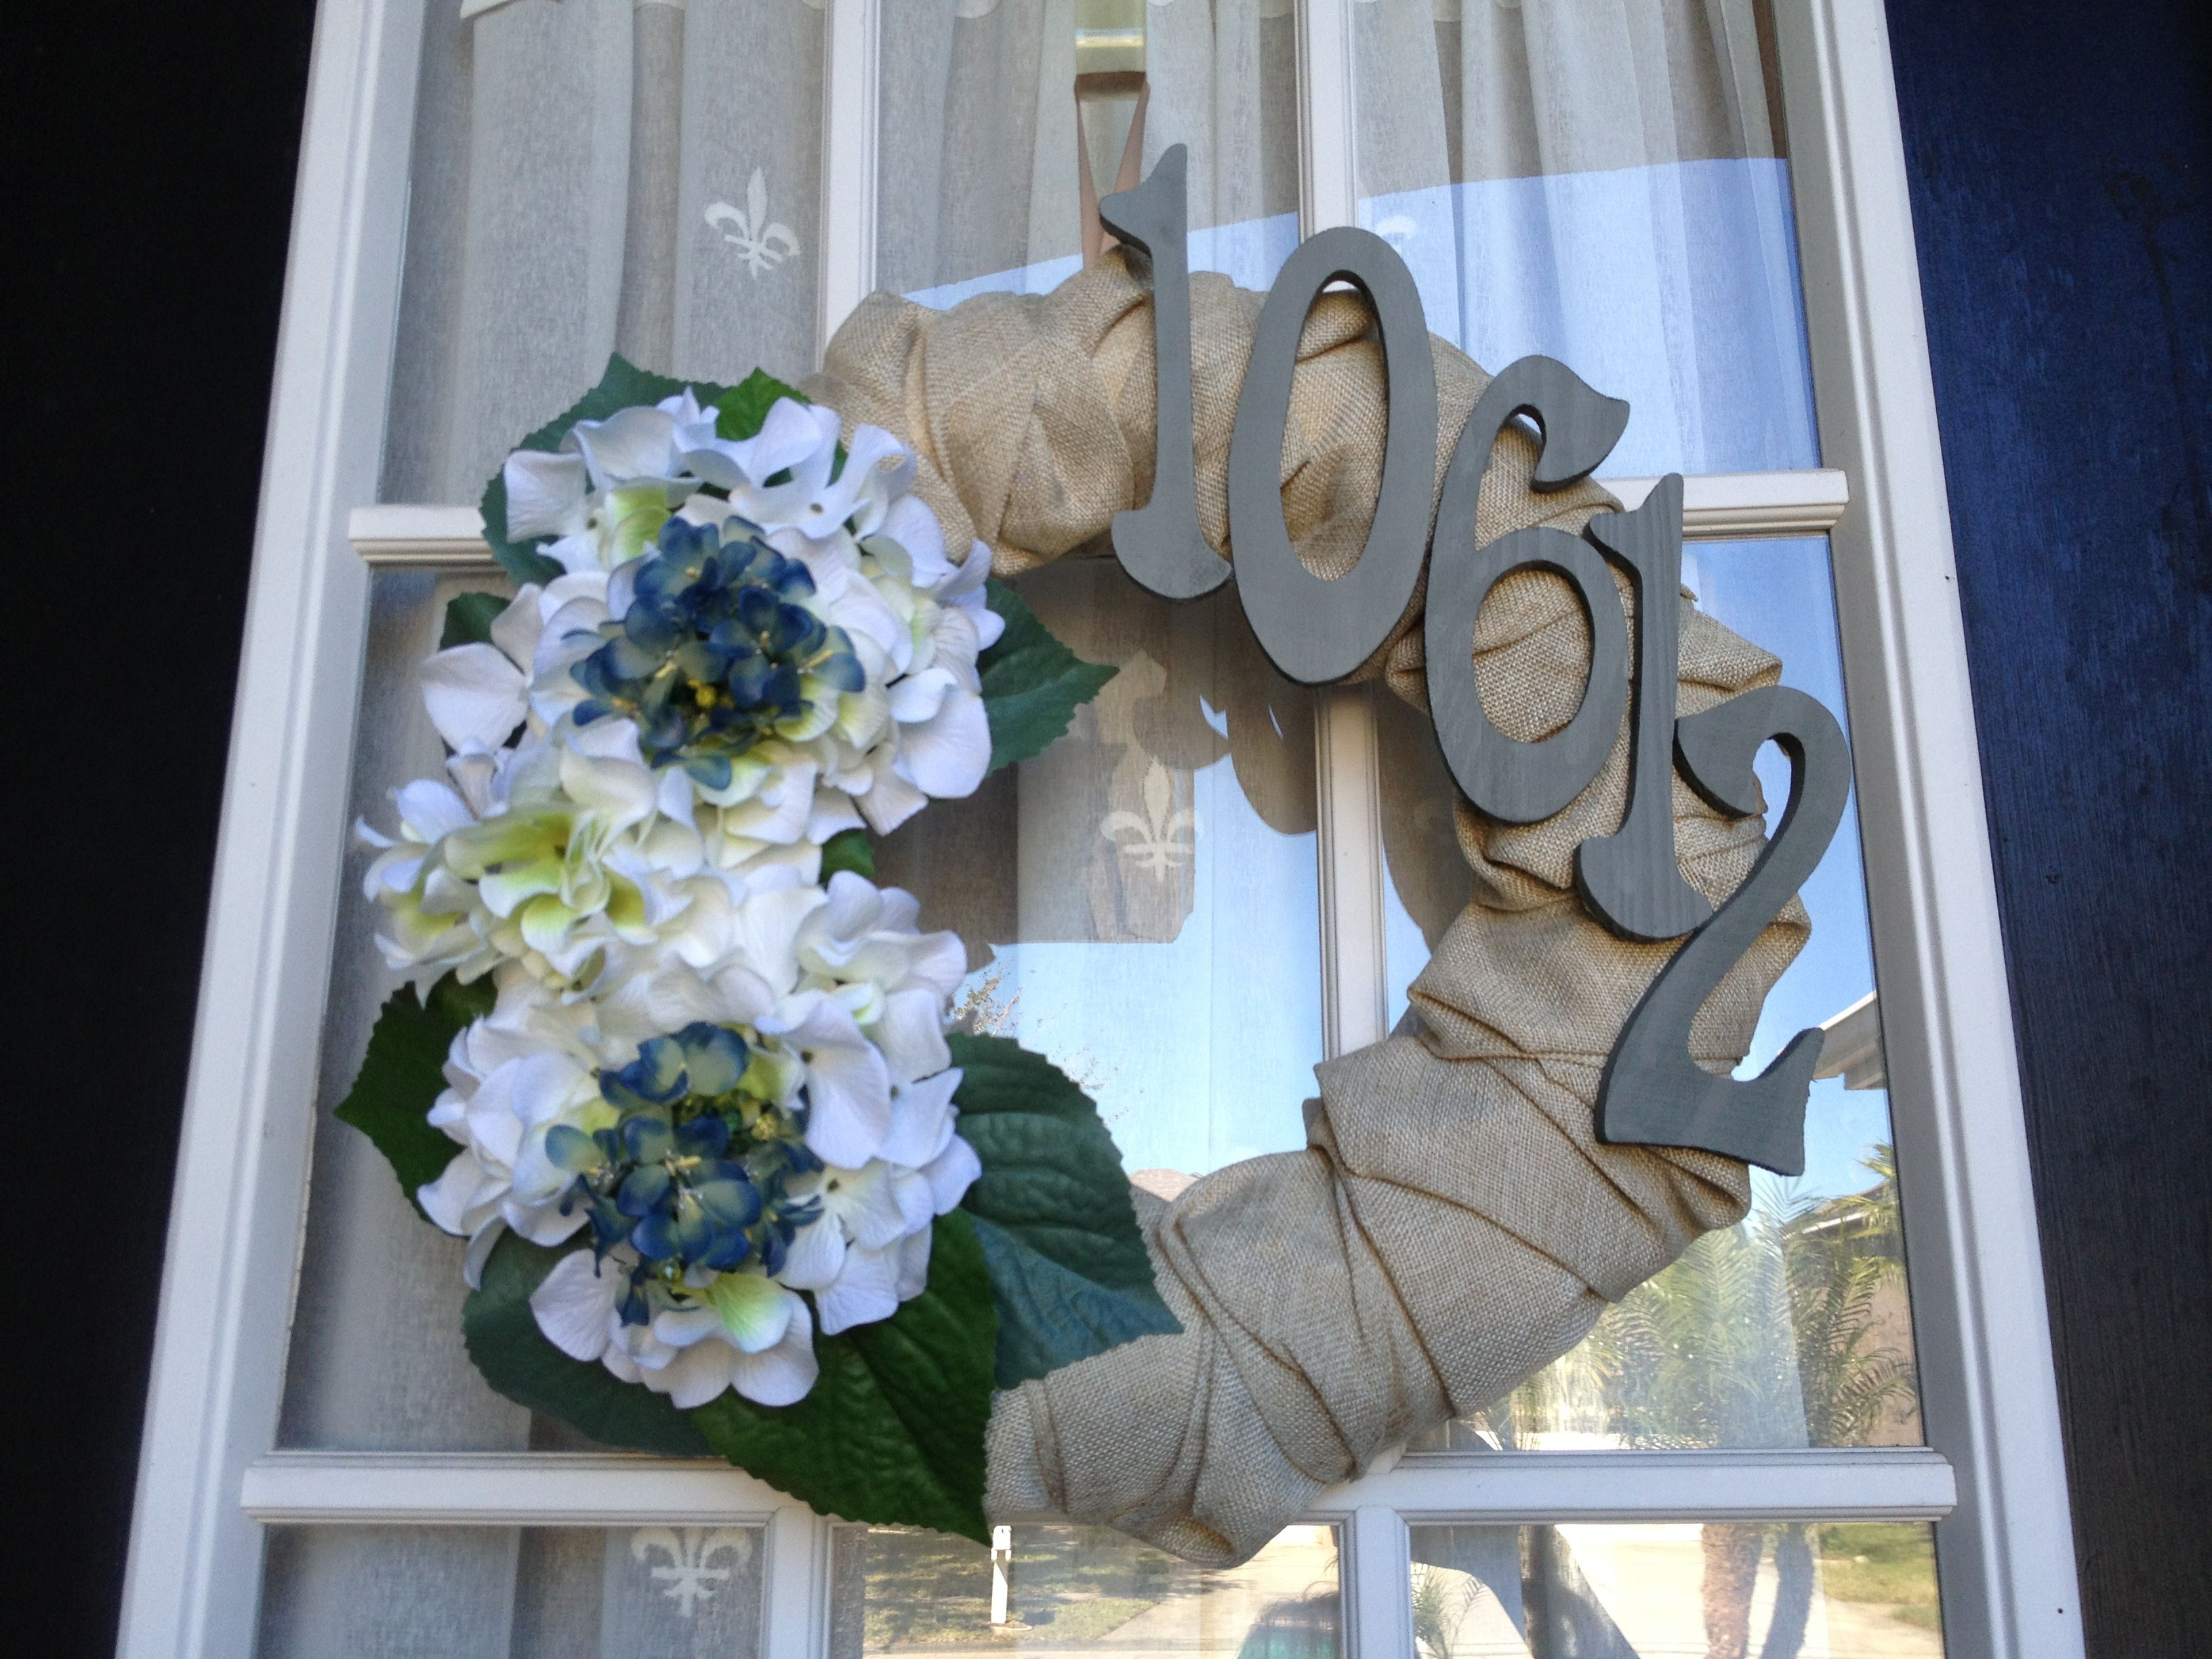 Used leftover house paint to paint numbers for perfect match. Hydrangea were our wedding flowers too. :)